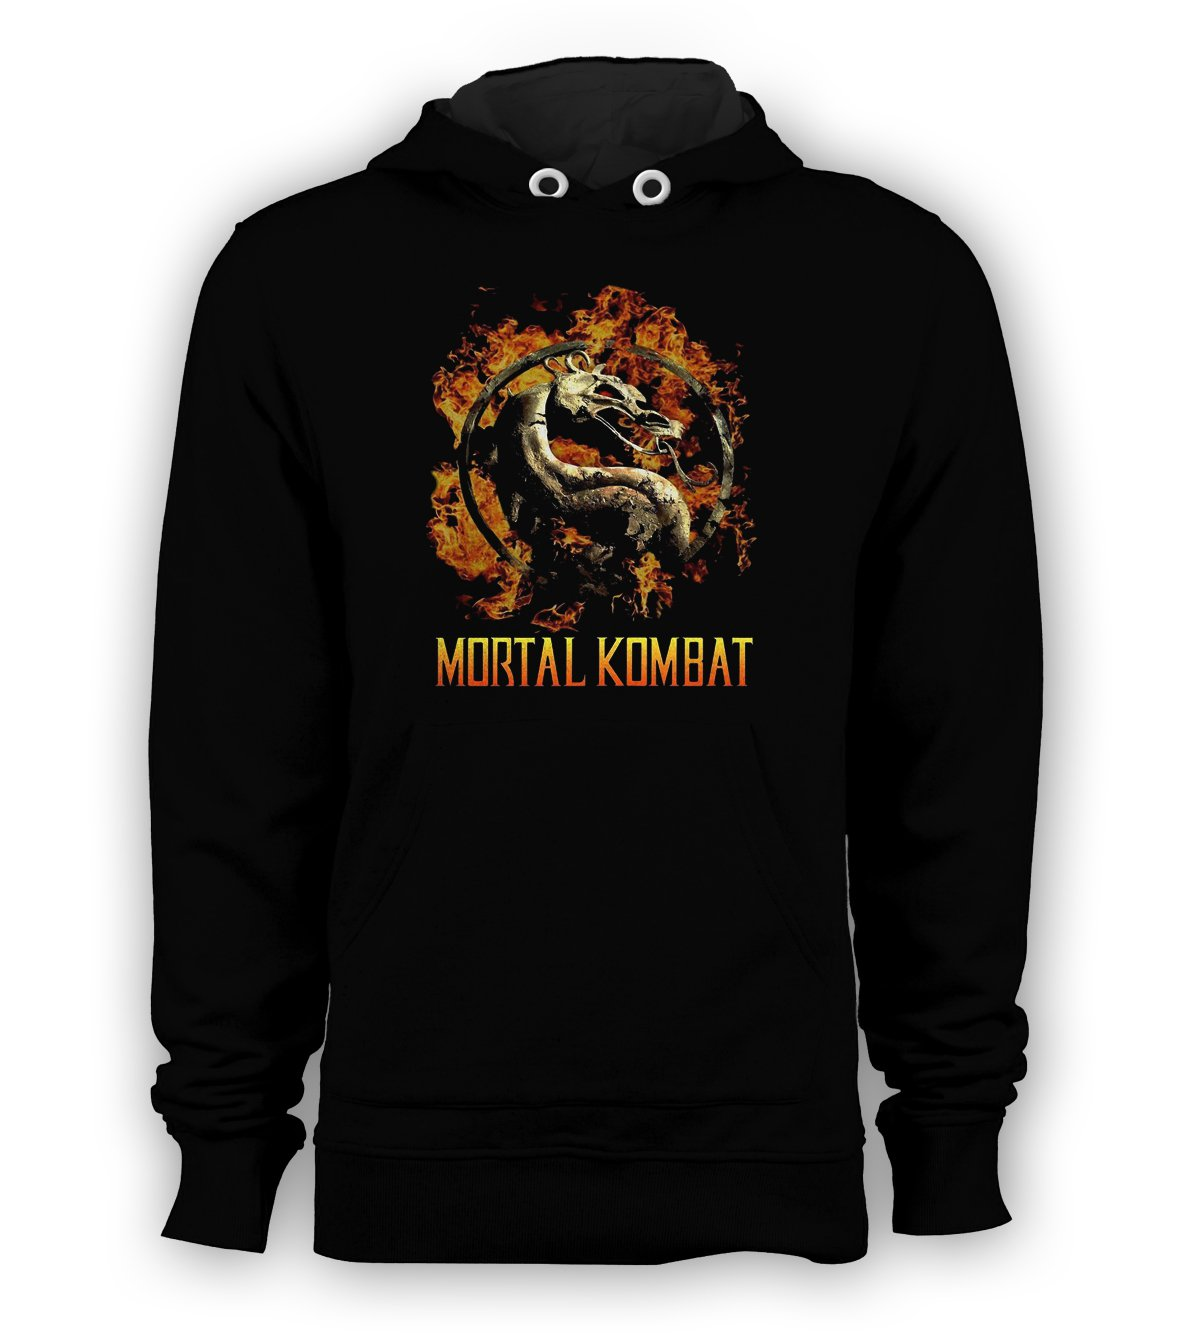 Mortal Kombat Games Pullover Hoodie Men Sweatshirts Size S to 3XL New Black